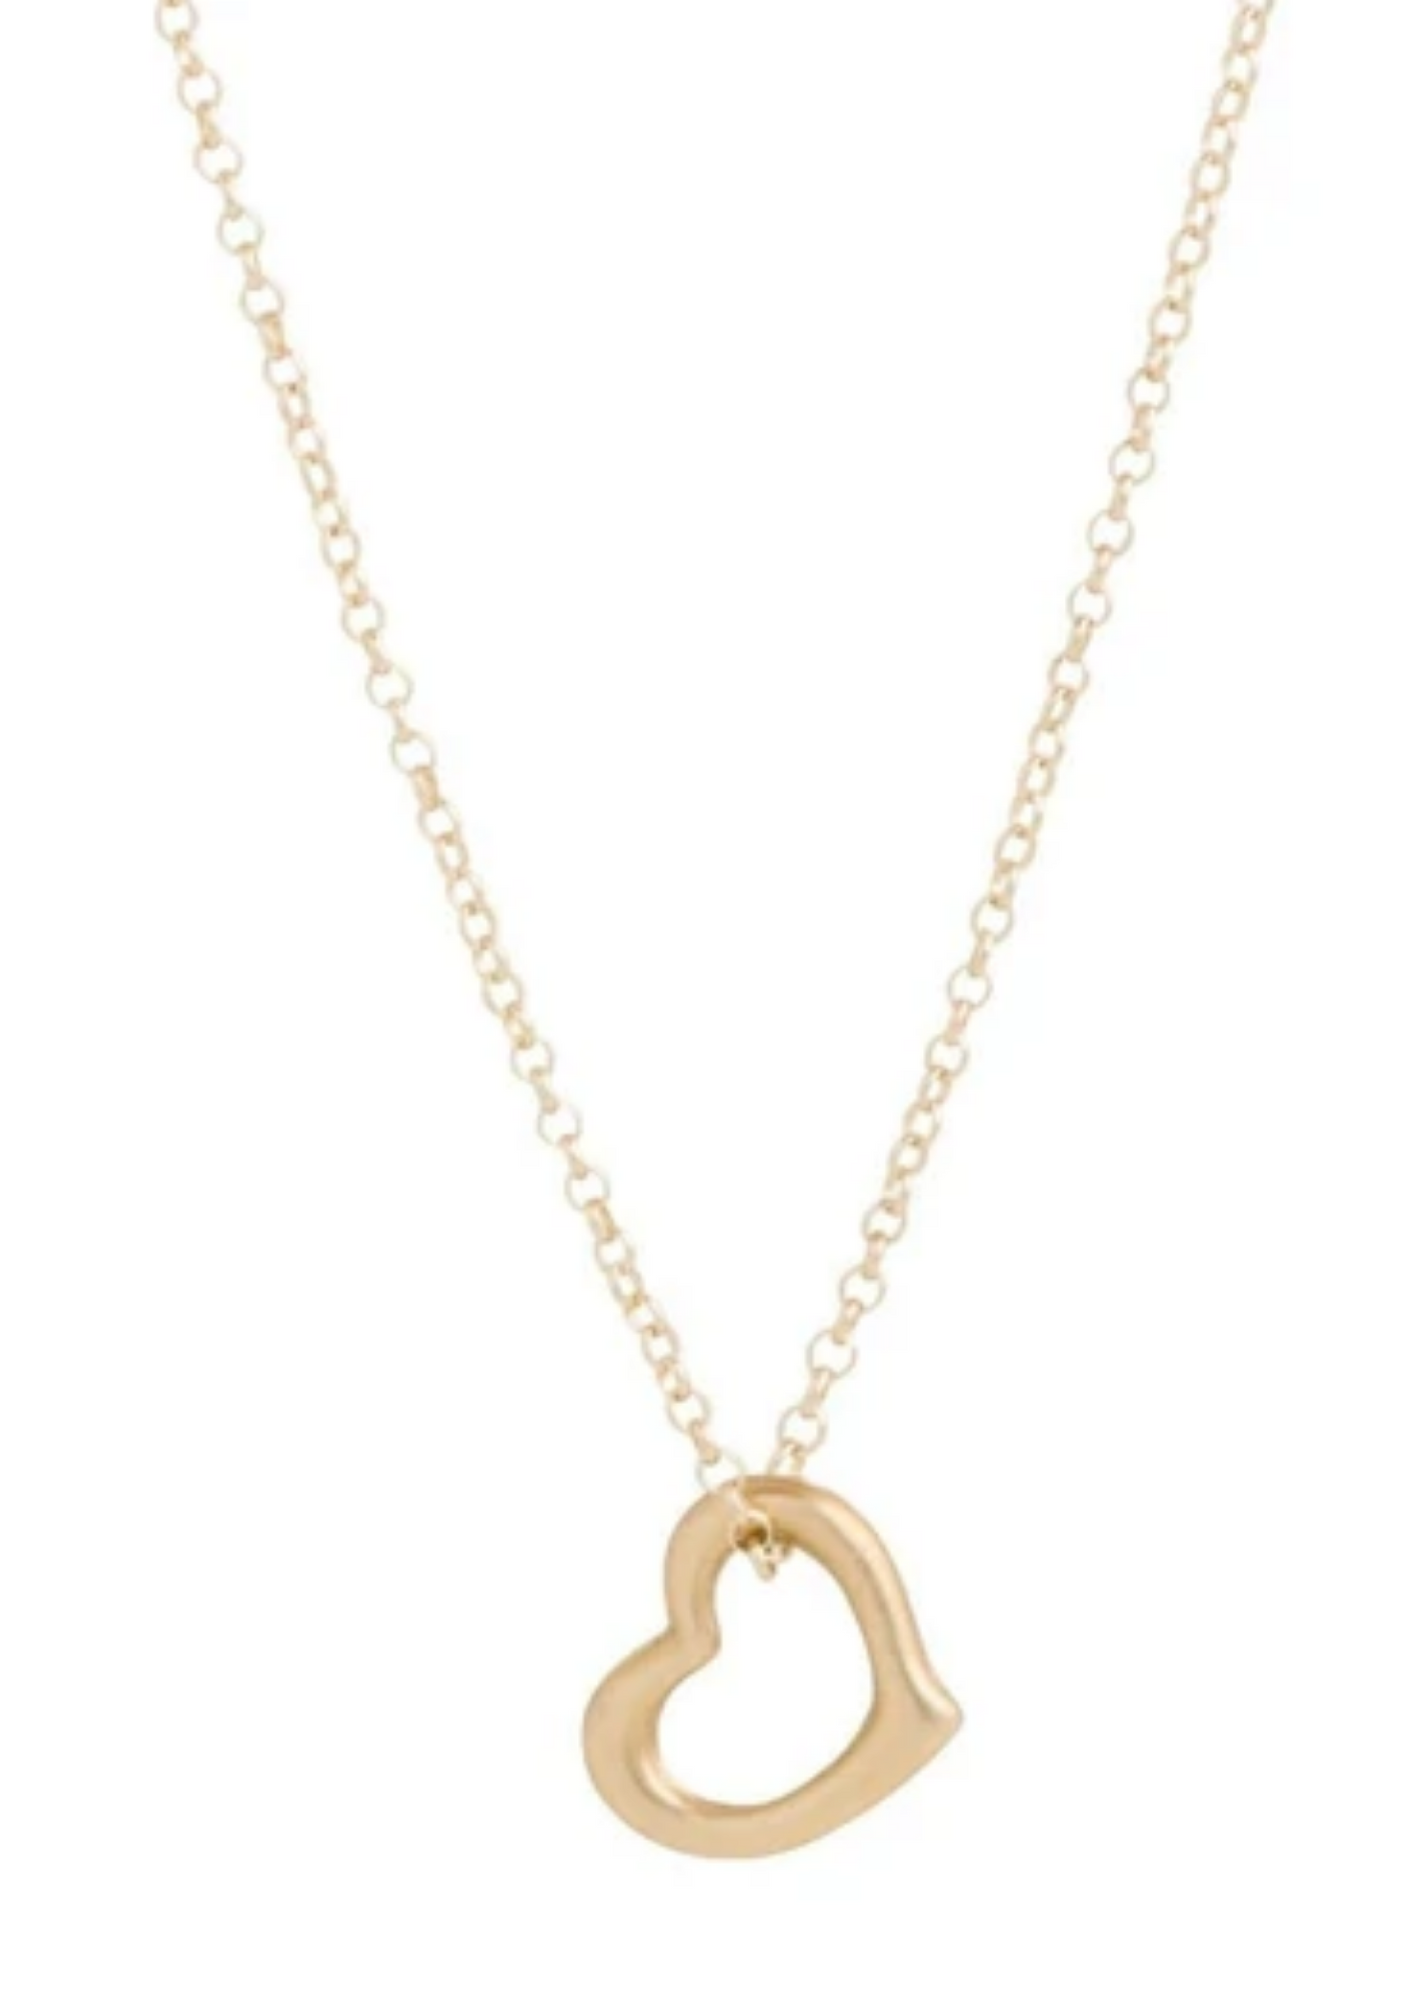 Necklace Gold - Love Gold Charm 16""